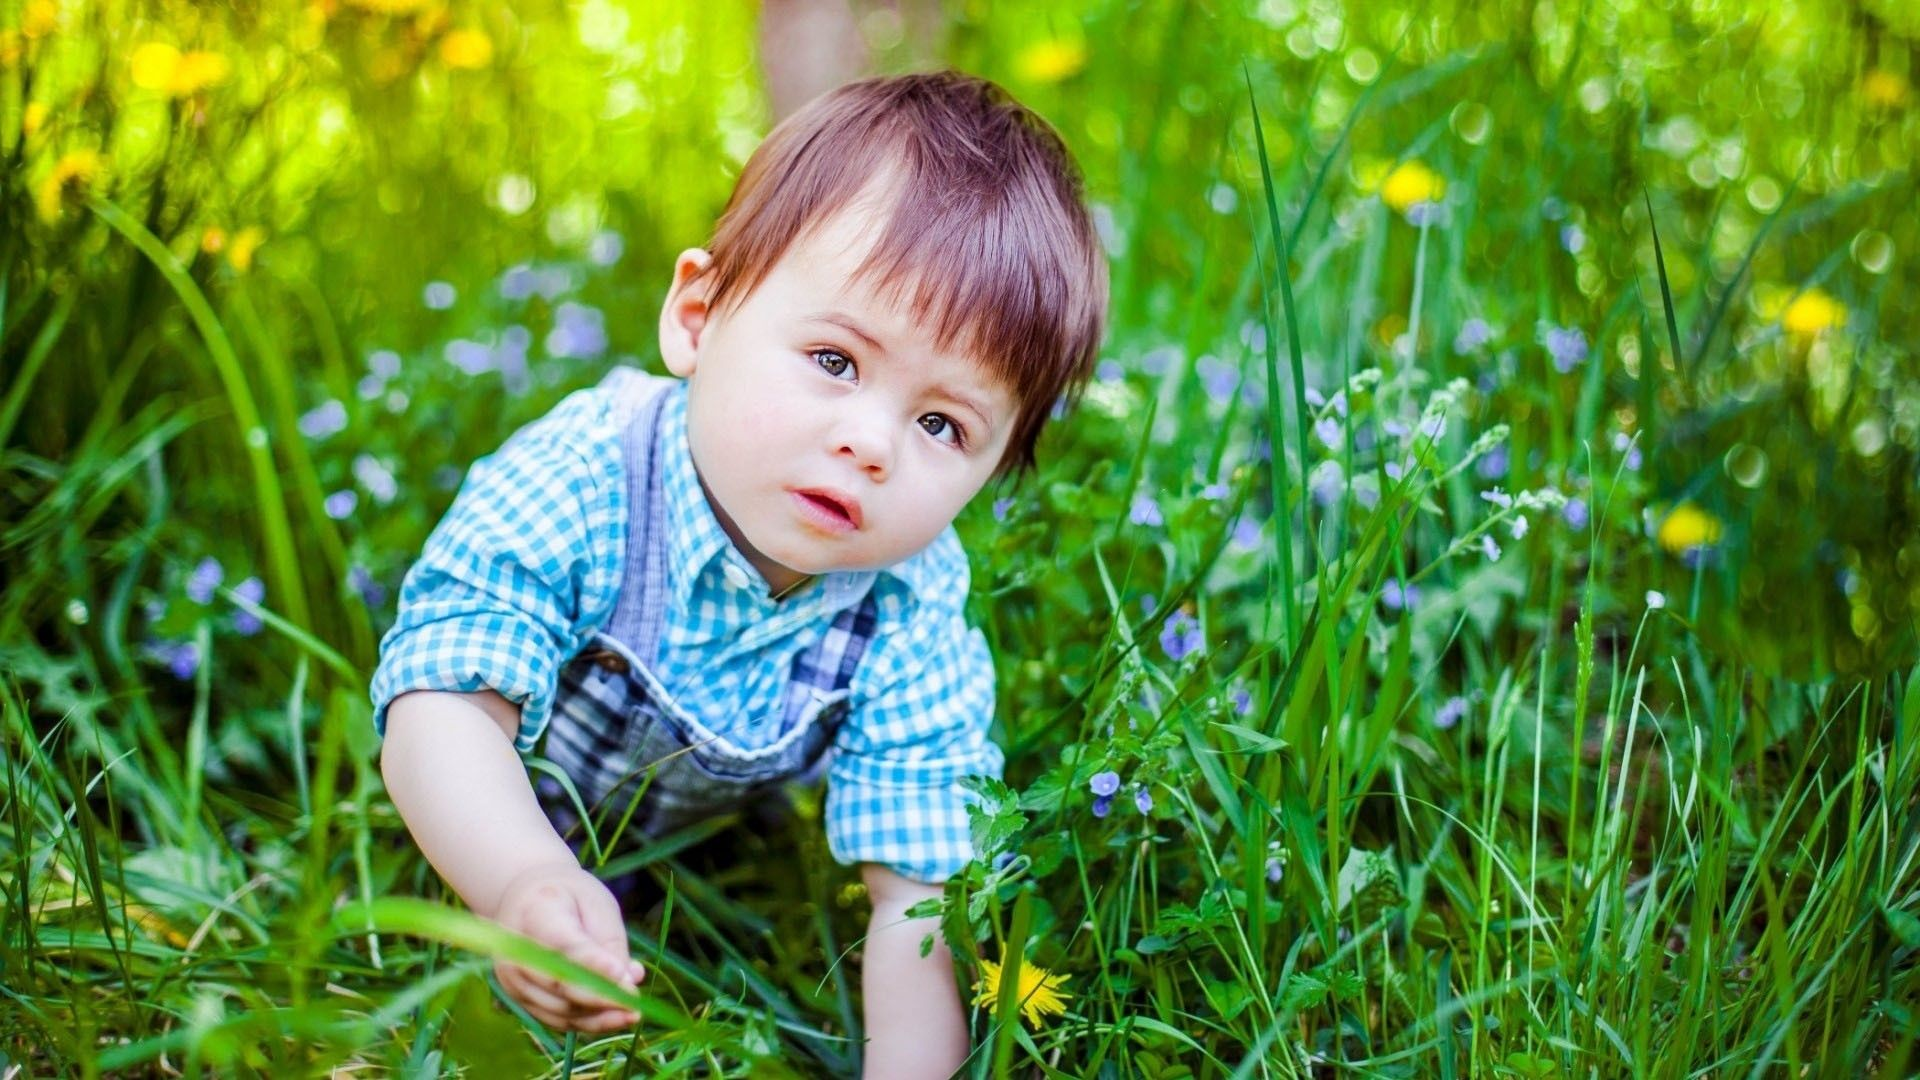 cute boy pic beautiful cute boy wallpapers backgrounds | hd